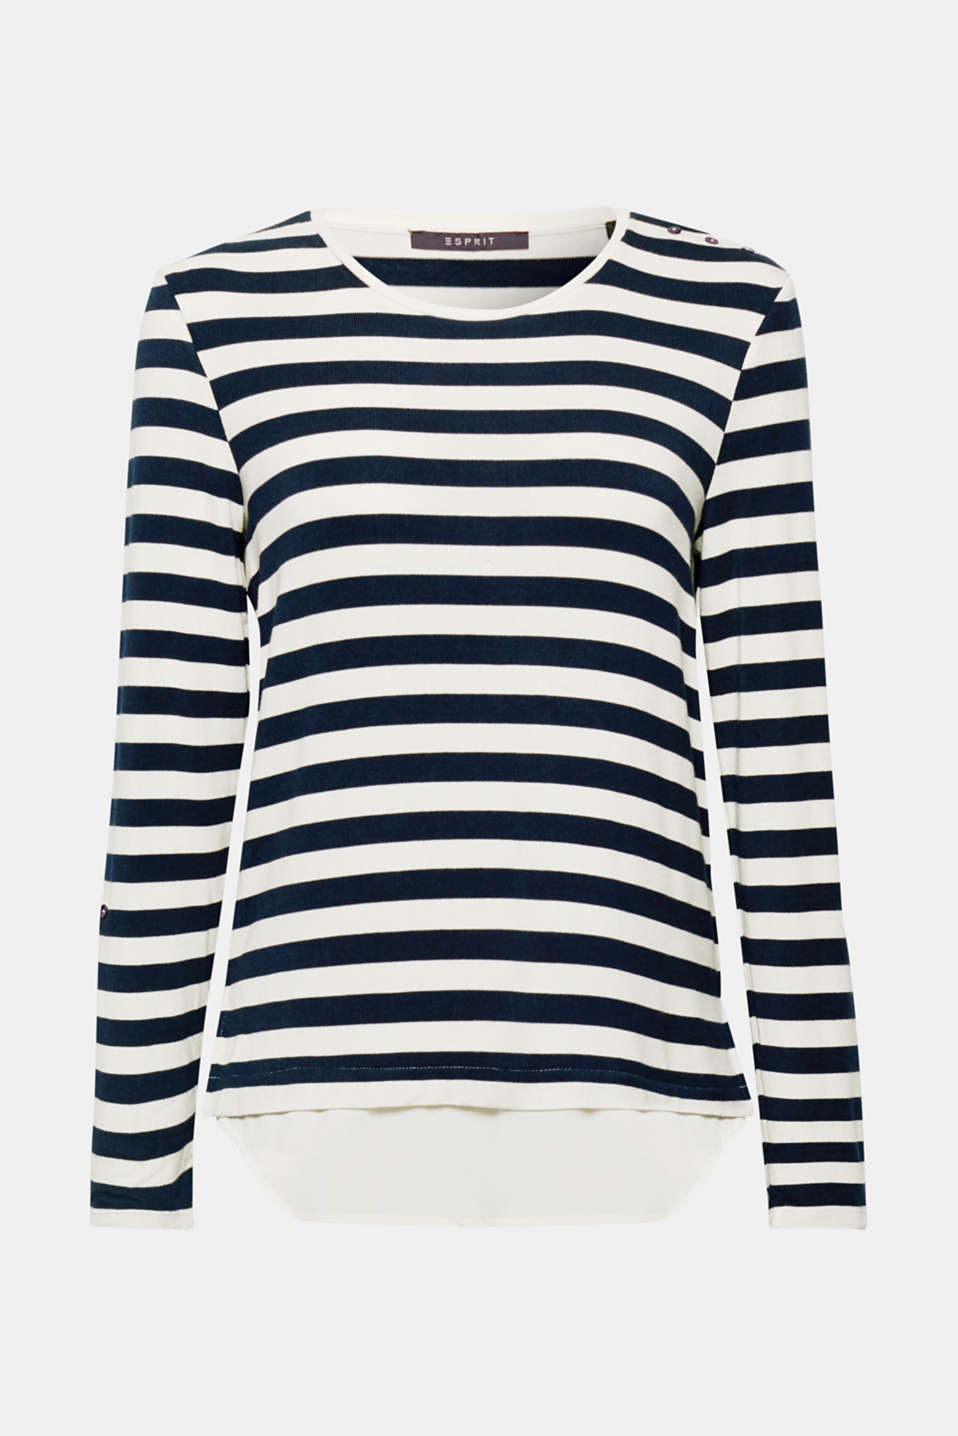 Striped stretch top in a layered look, NAVY, detail image number 6